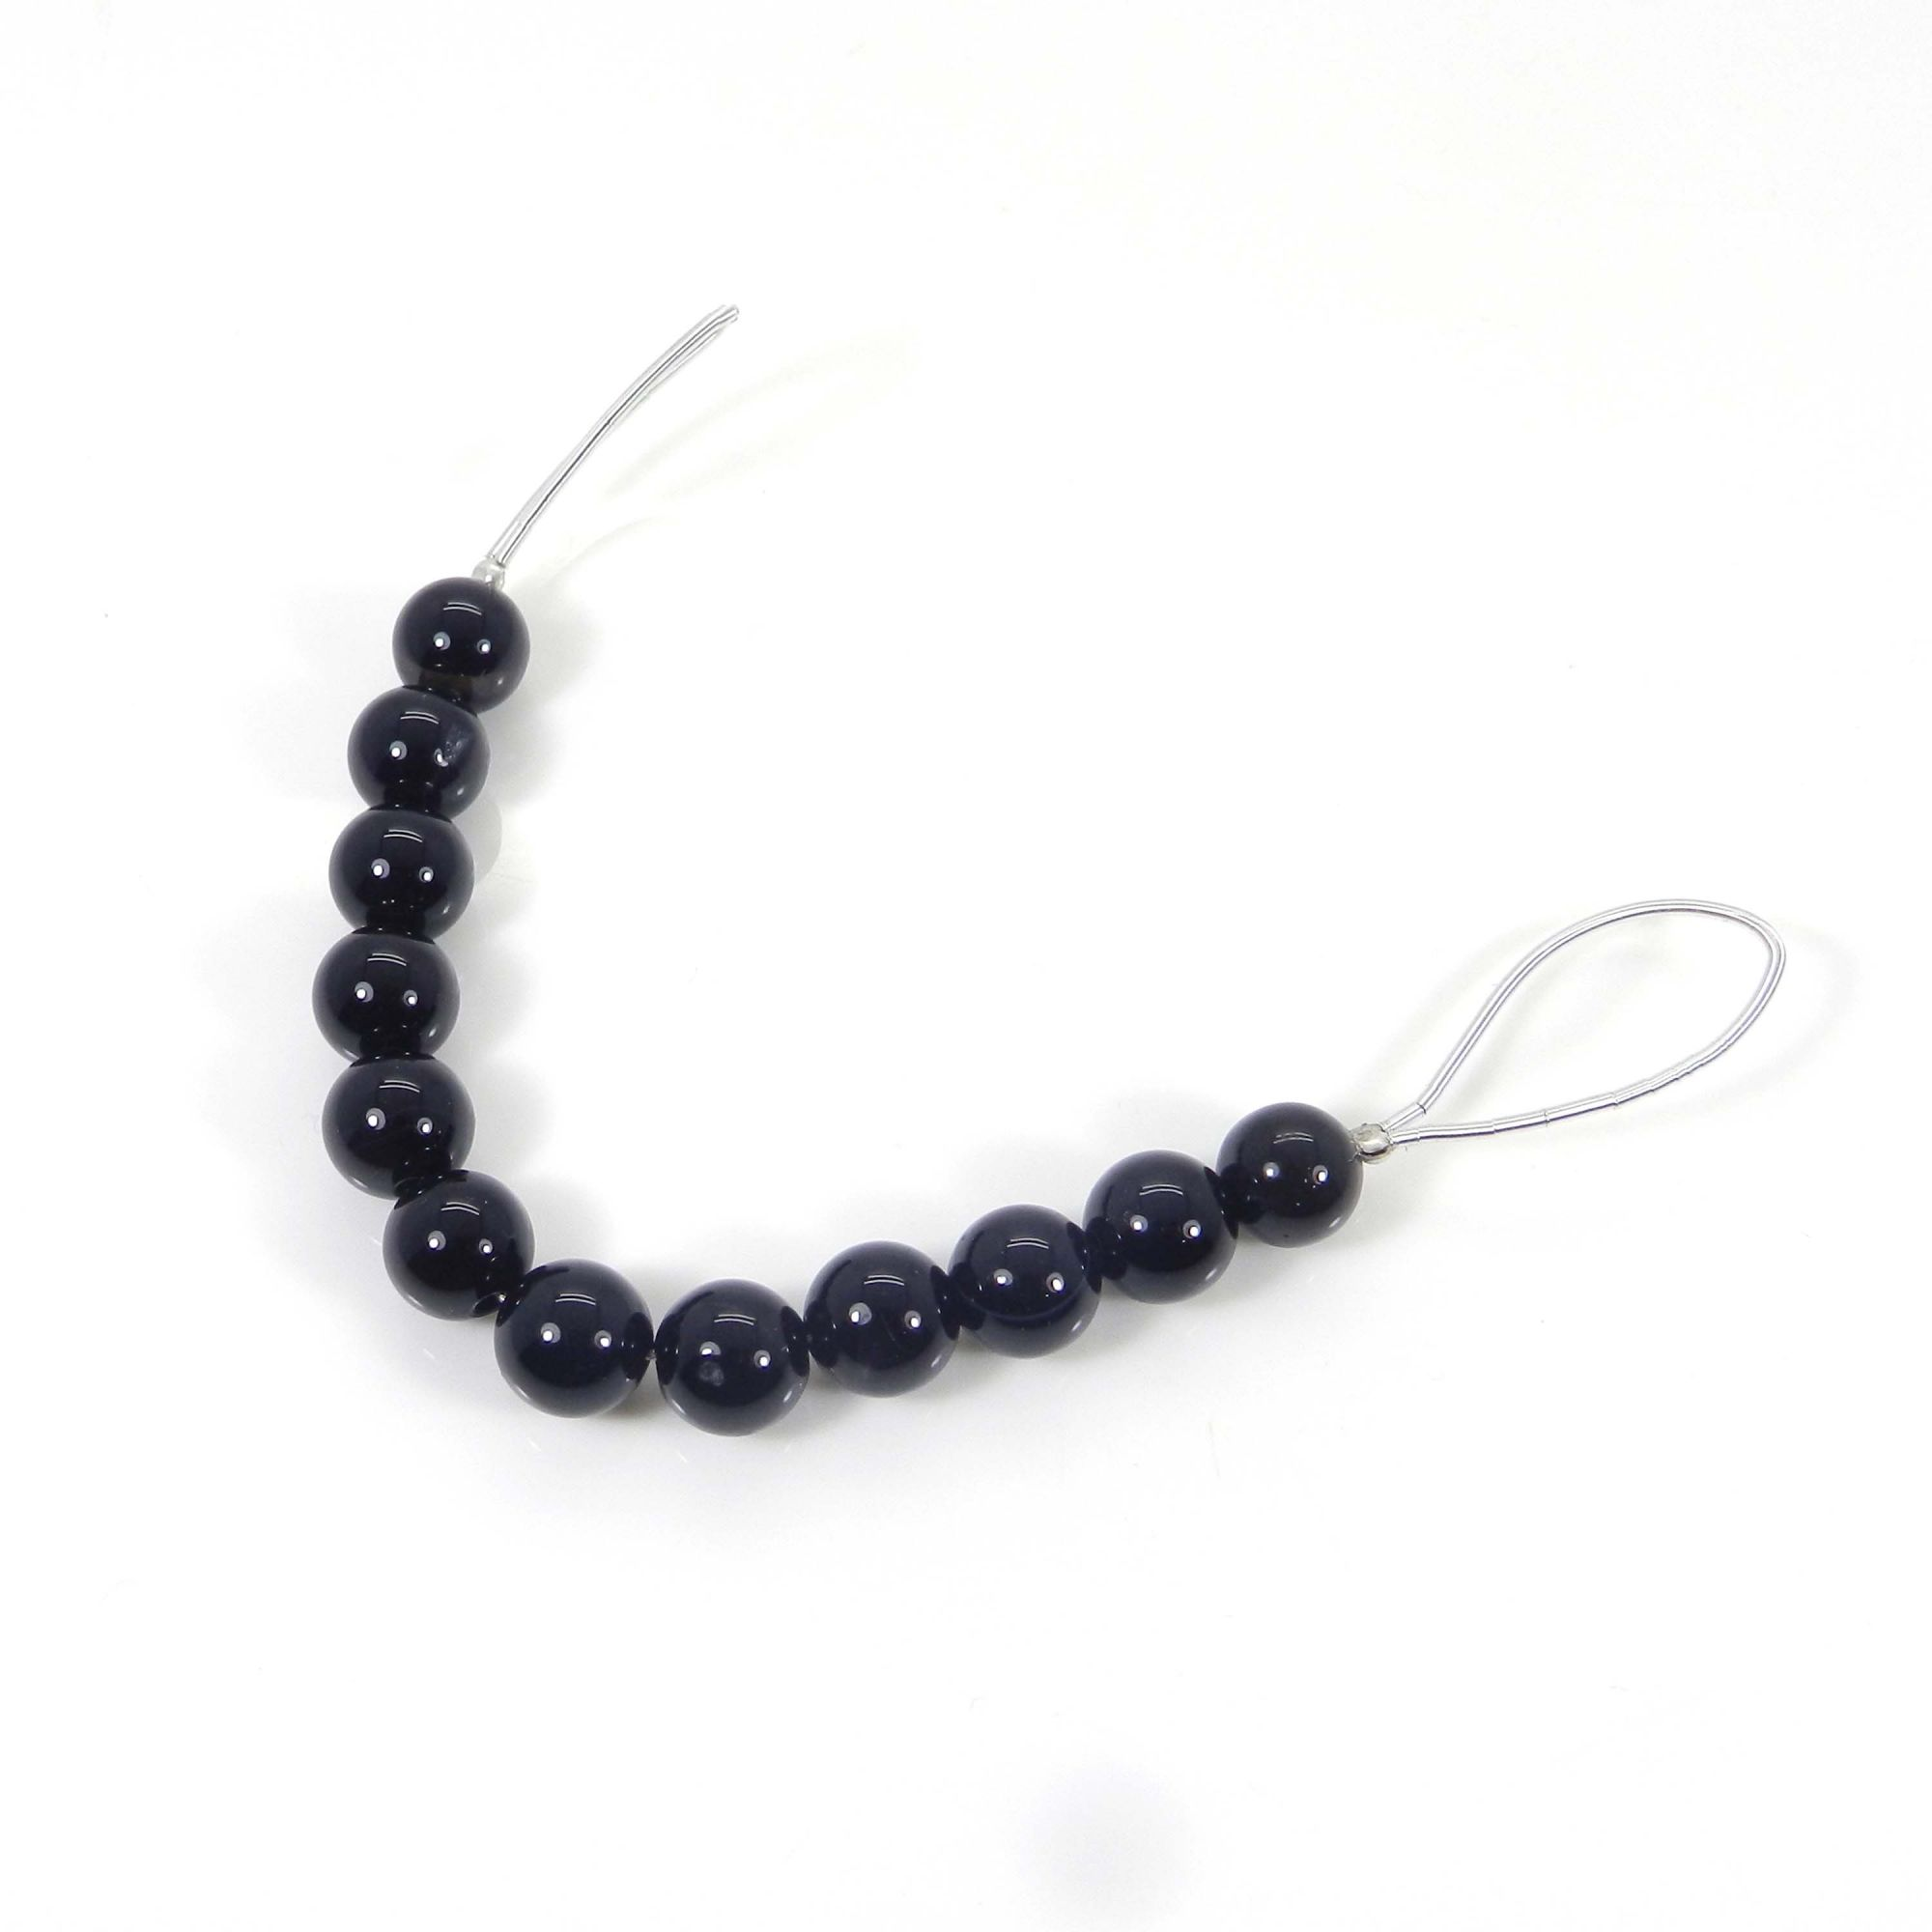 Beads Seller !! Black Onyx Roundel Smooth Plain Beads 8mm 3.14 Inch 46 Cts